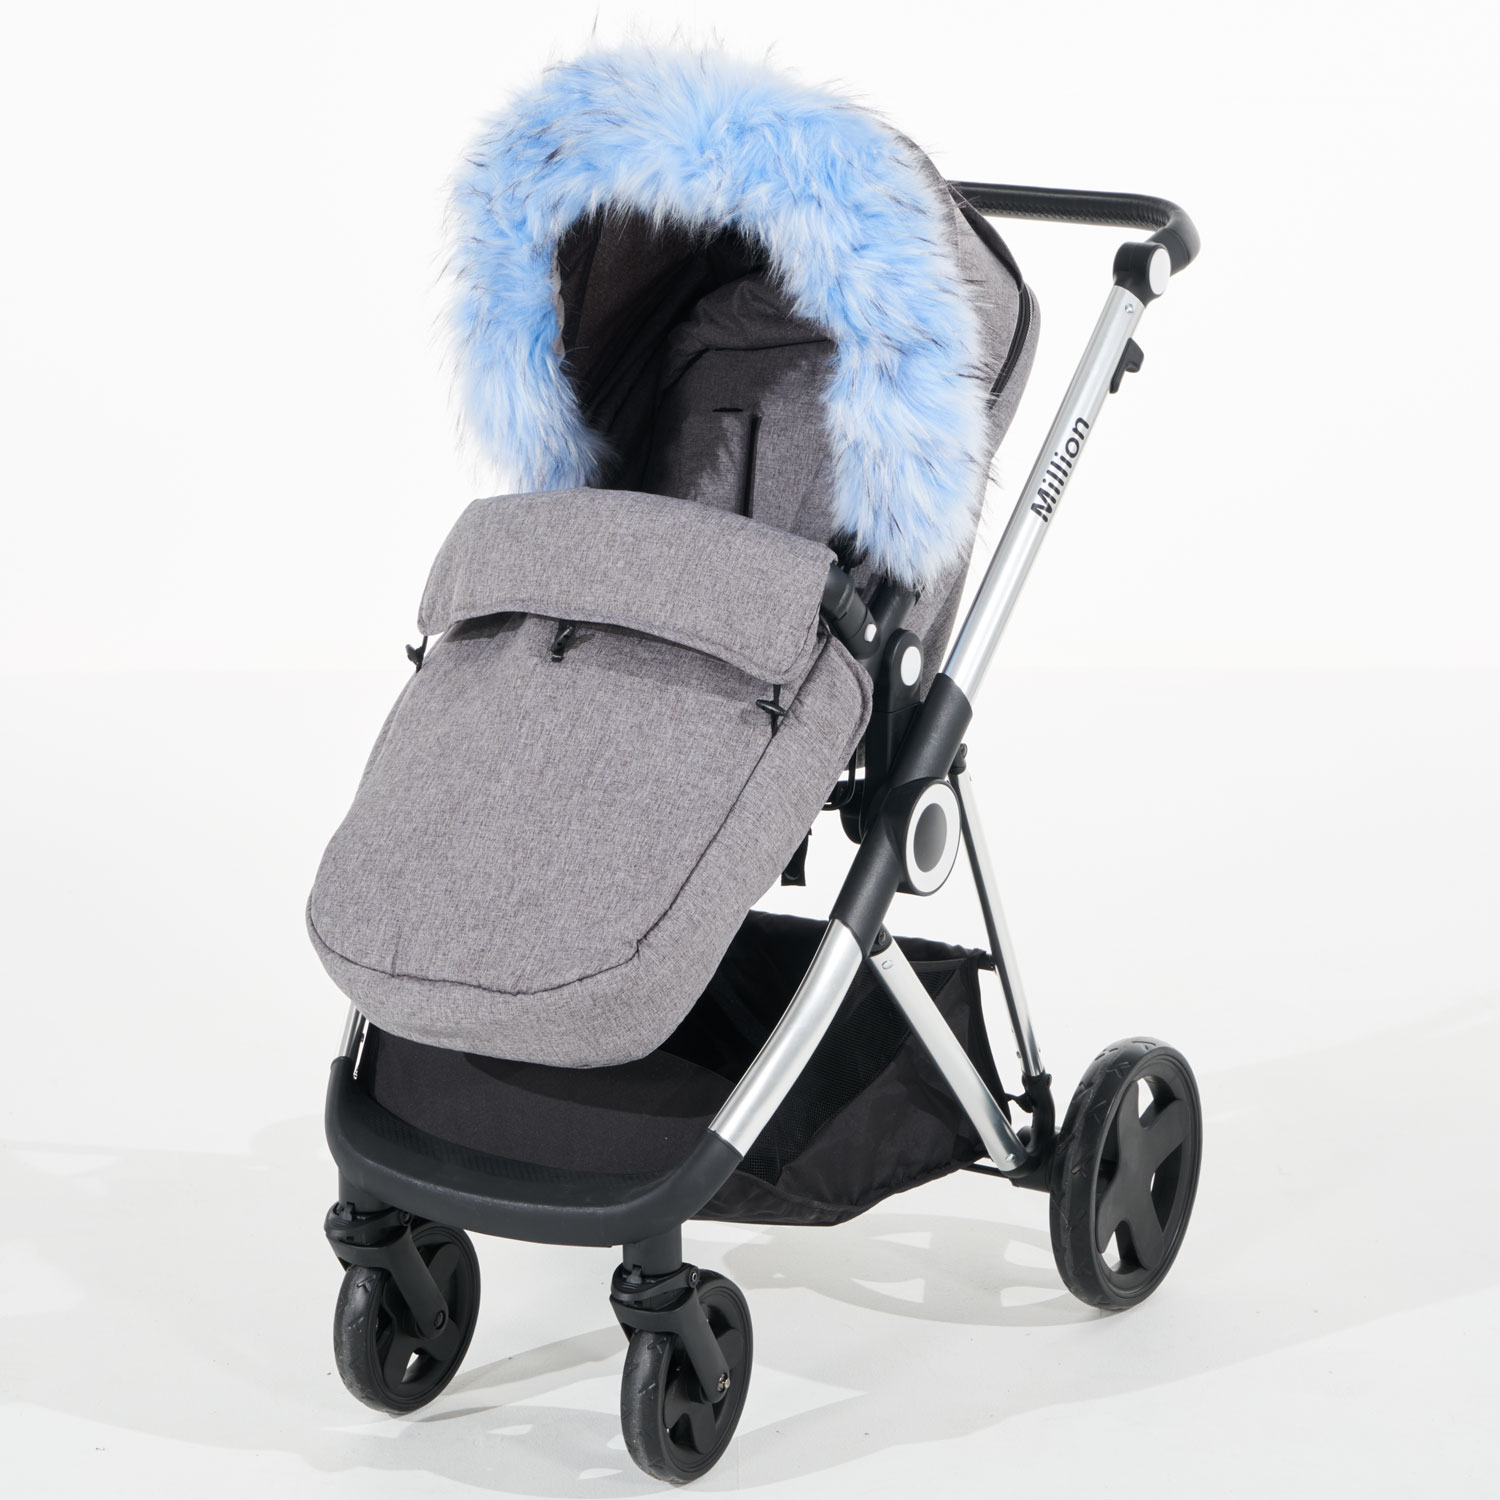 Pram Fur Hood Trim Attachment For Pushchair Compatible with Orbit Baby